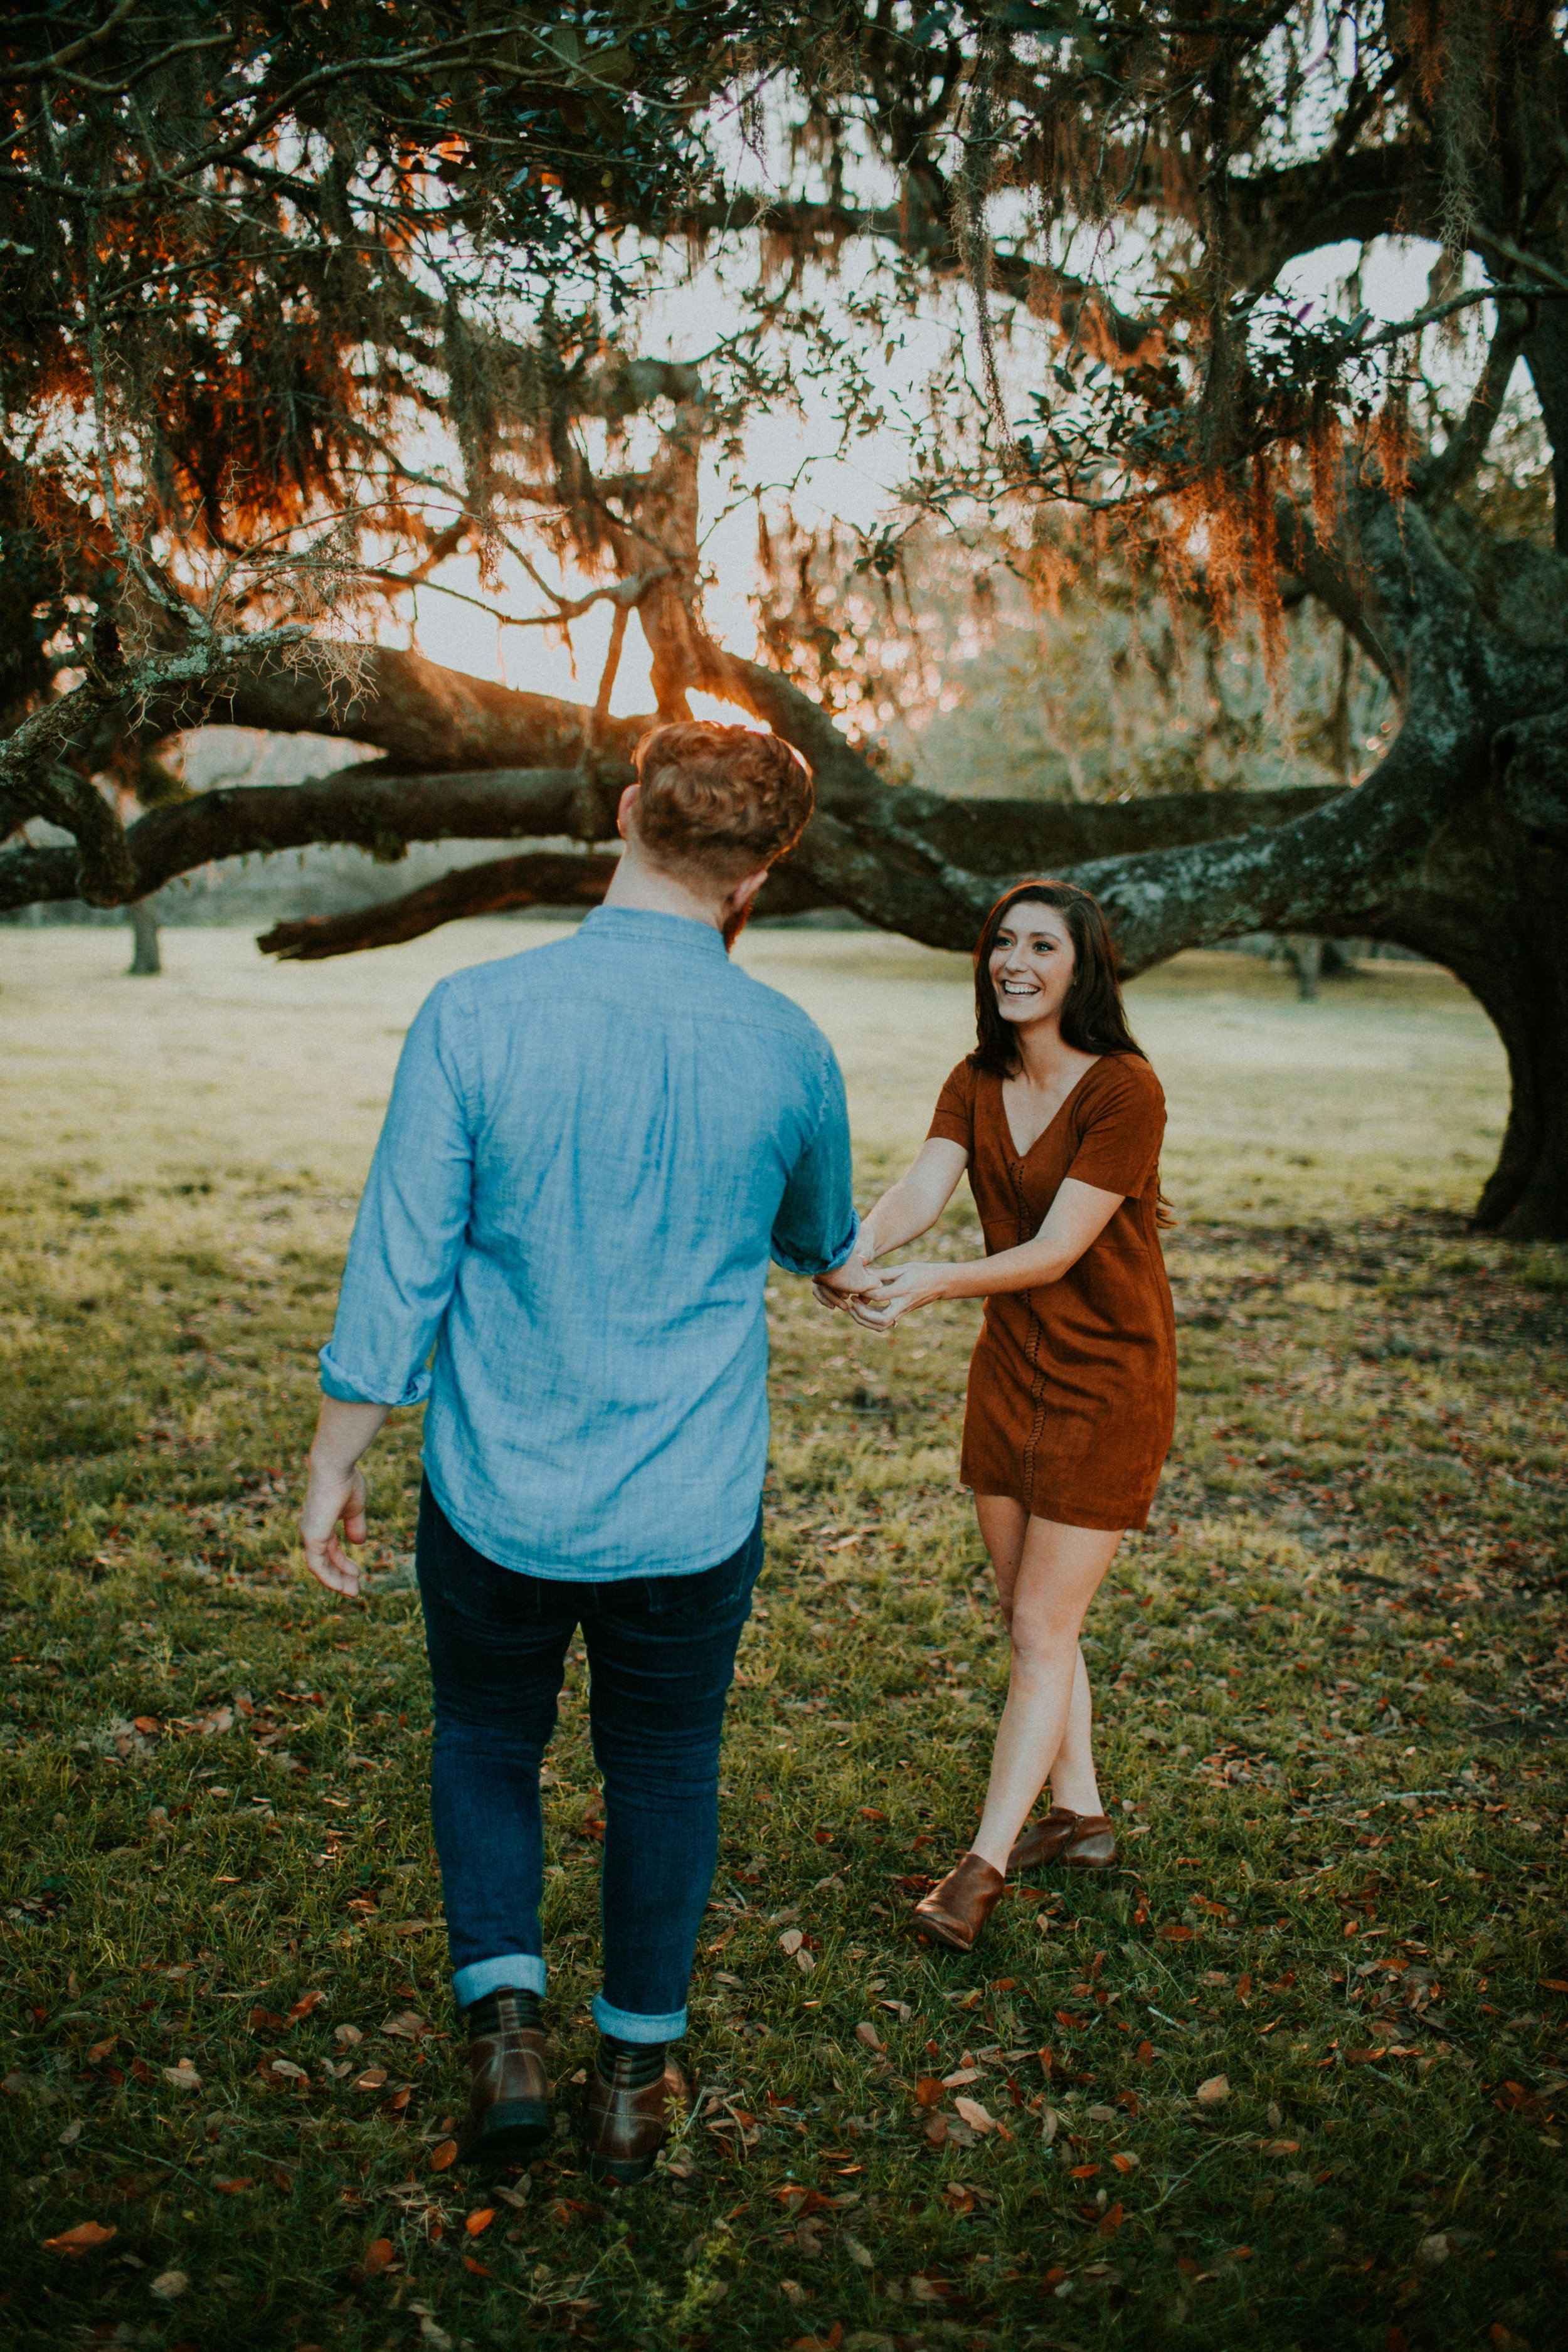 Erin_and_Jacob___The_Frost_Collective_Engagement_Session_1273.jpg